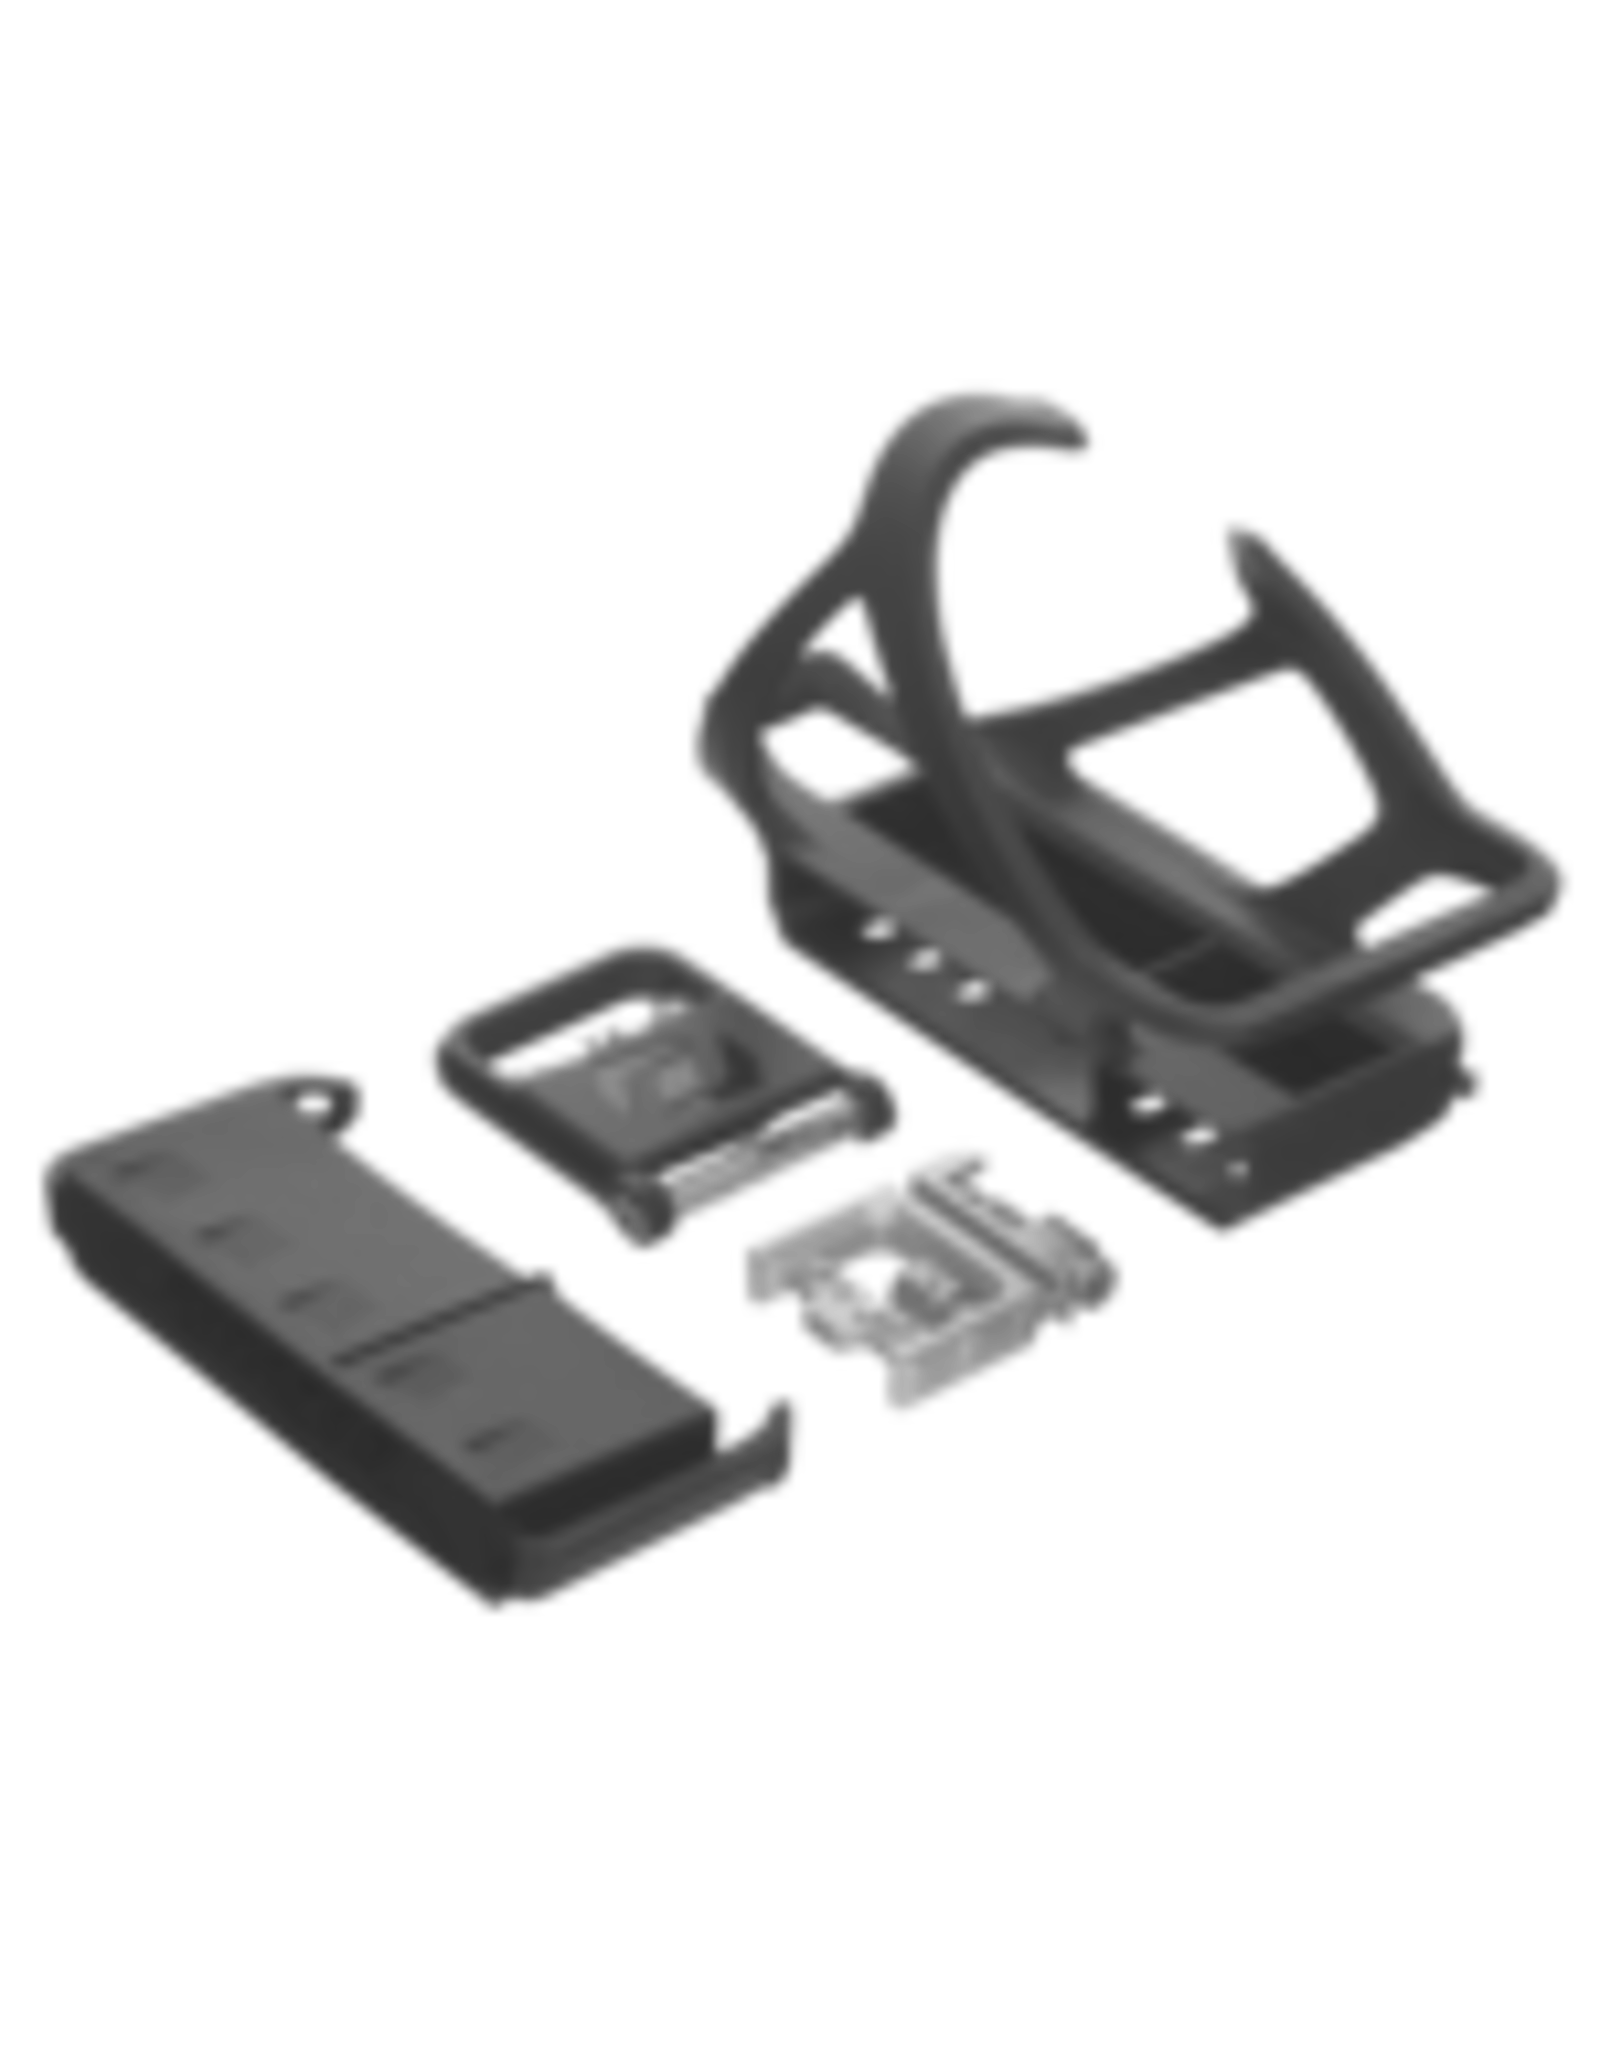 SYNCROS BOTTLE CAGE SYNCROS TAILOR CAGE 3.0 BOTTLE CAGE BLACK - LEFT